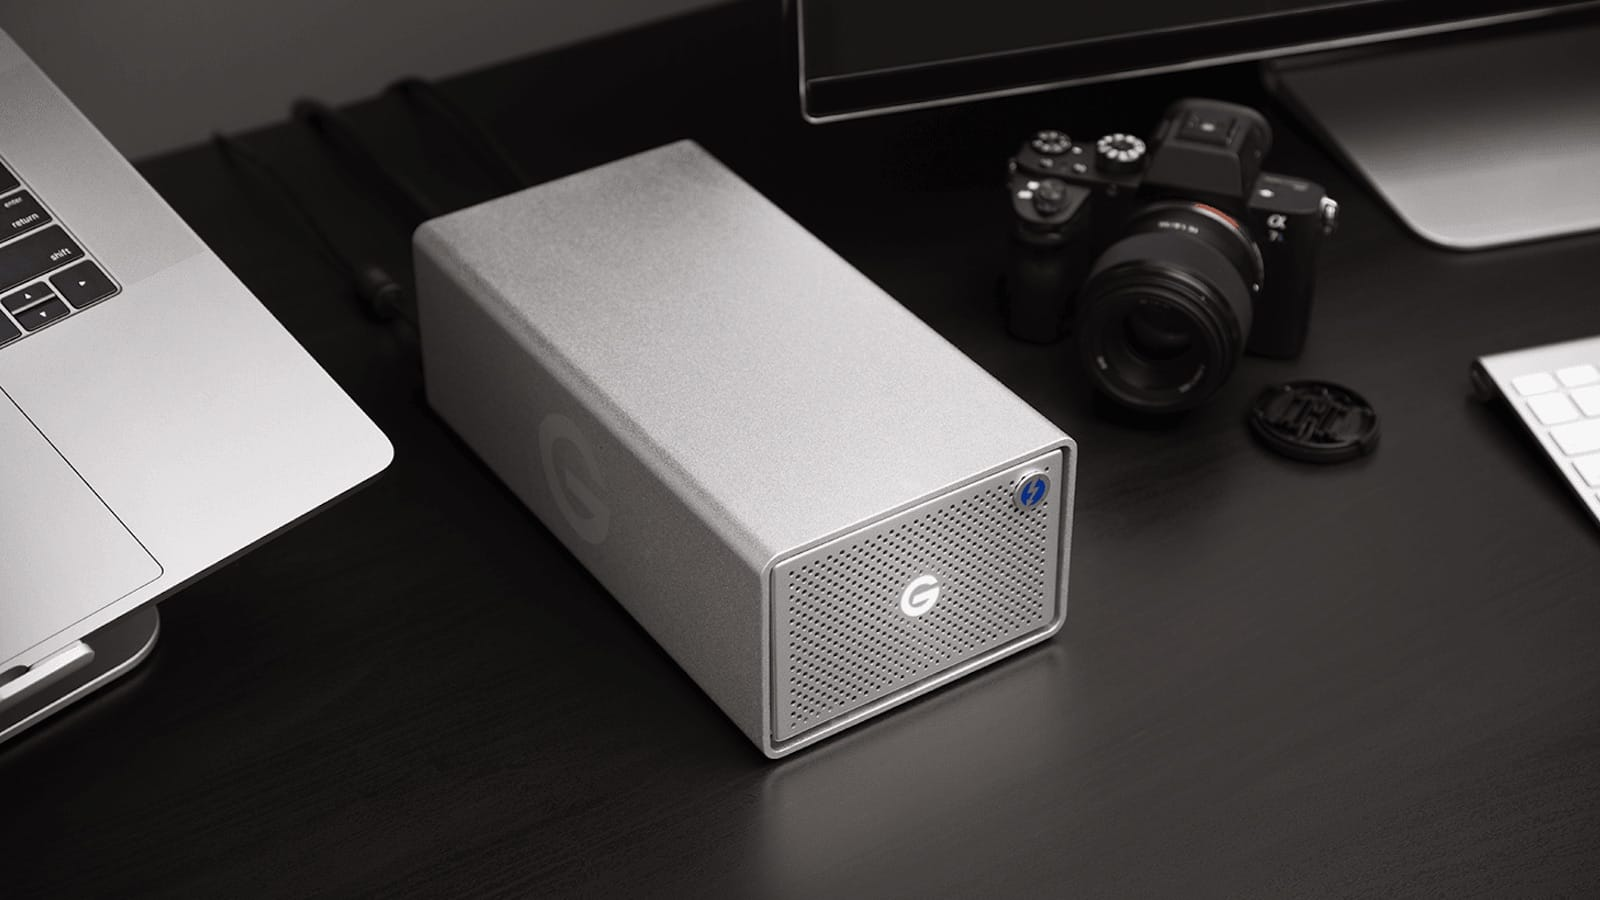 Western Digital G-RAID Hard Drive with Thunderbolt 3 features transfer rates up to 500MB/s